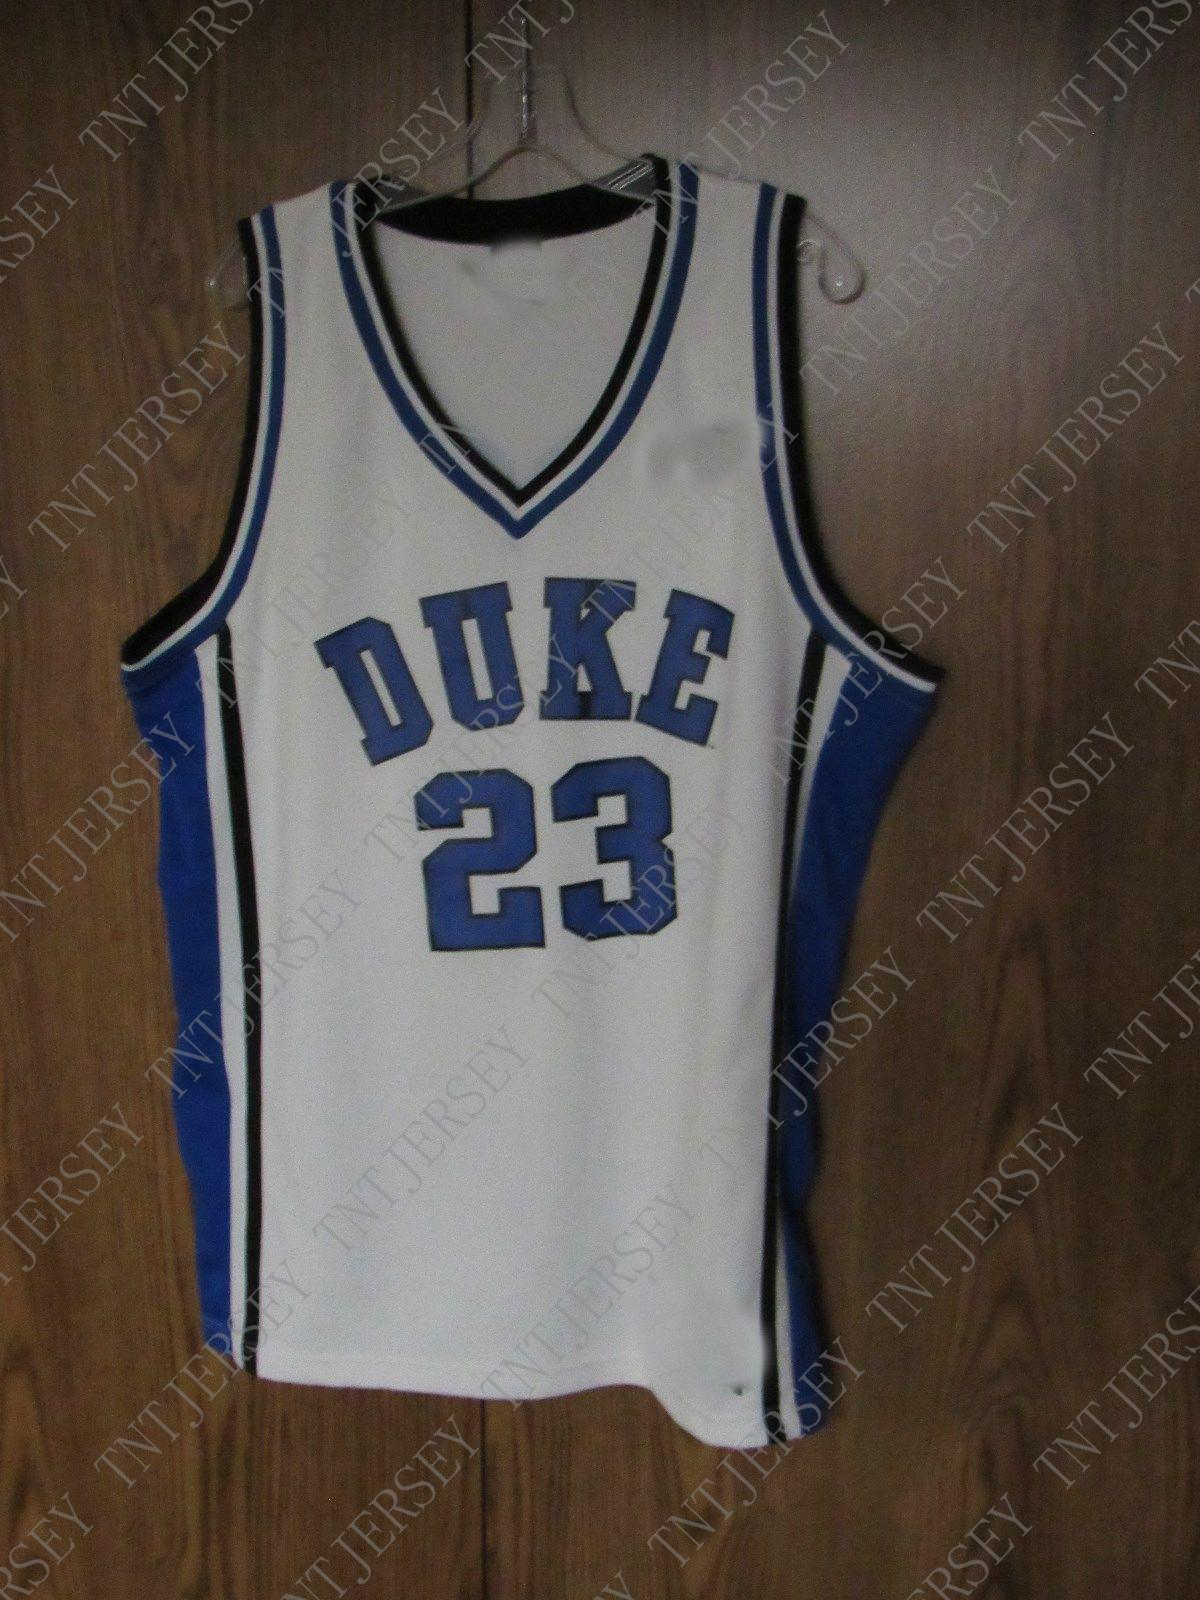 3ac77f531 2019 Cheap Custom NCAA DUKE BLUE DEVILS BASKETBALL JERSEY   23 Shelden  Williams Stitched Customize Any Number Name MEN WOMEN YOUTH XS 5XL From  Tntjersey